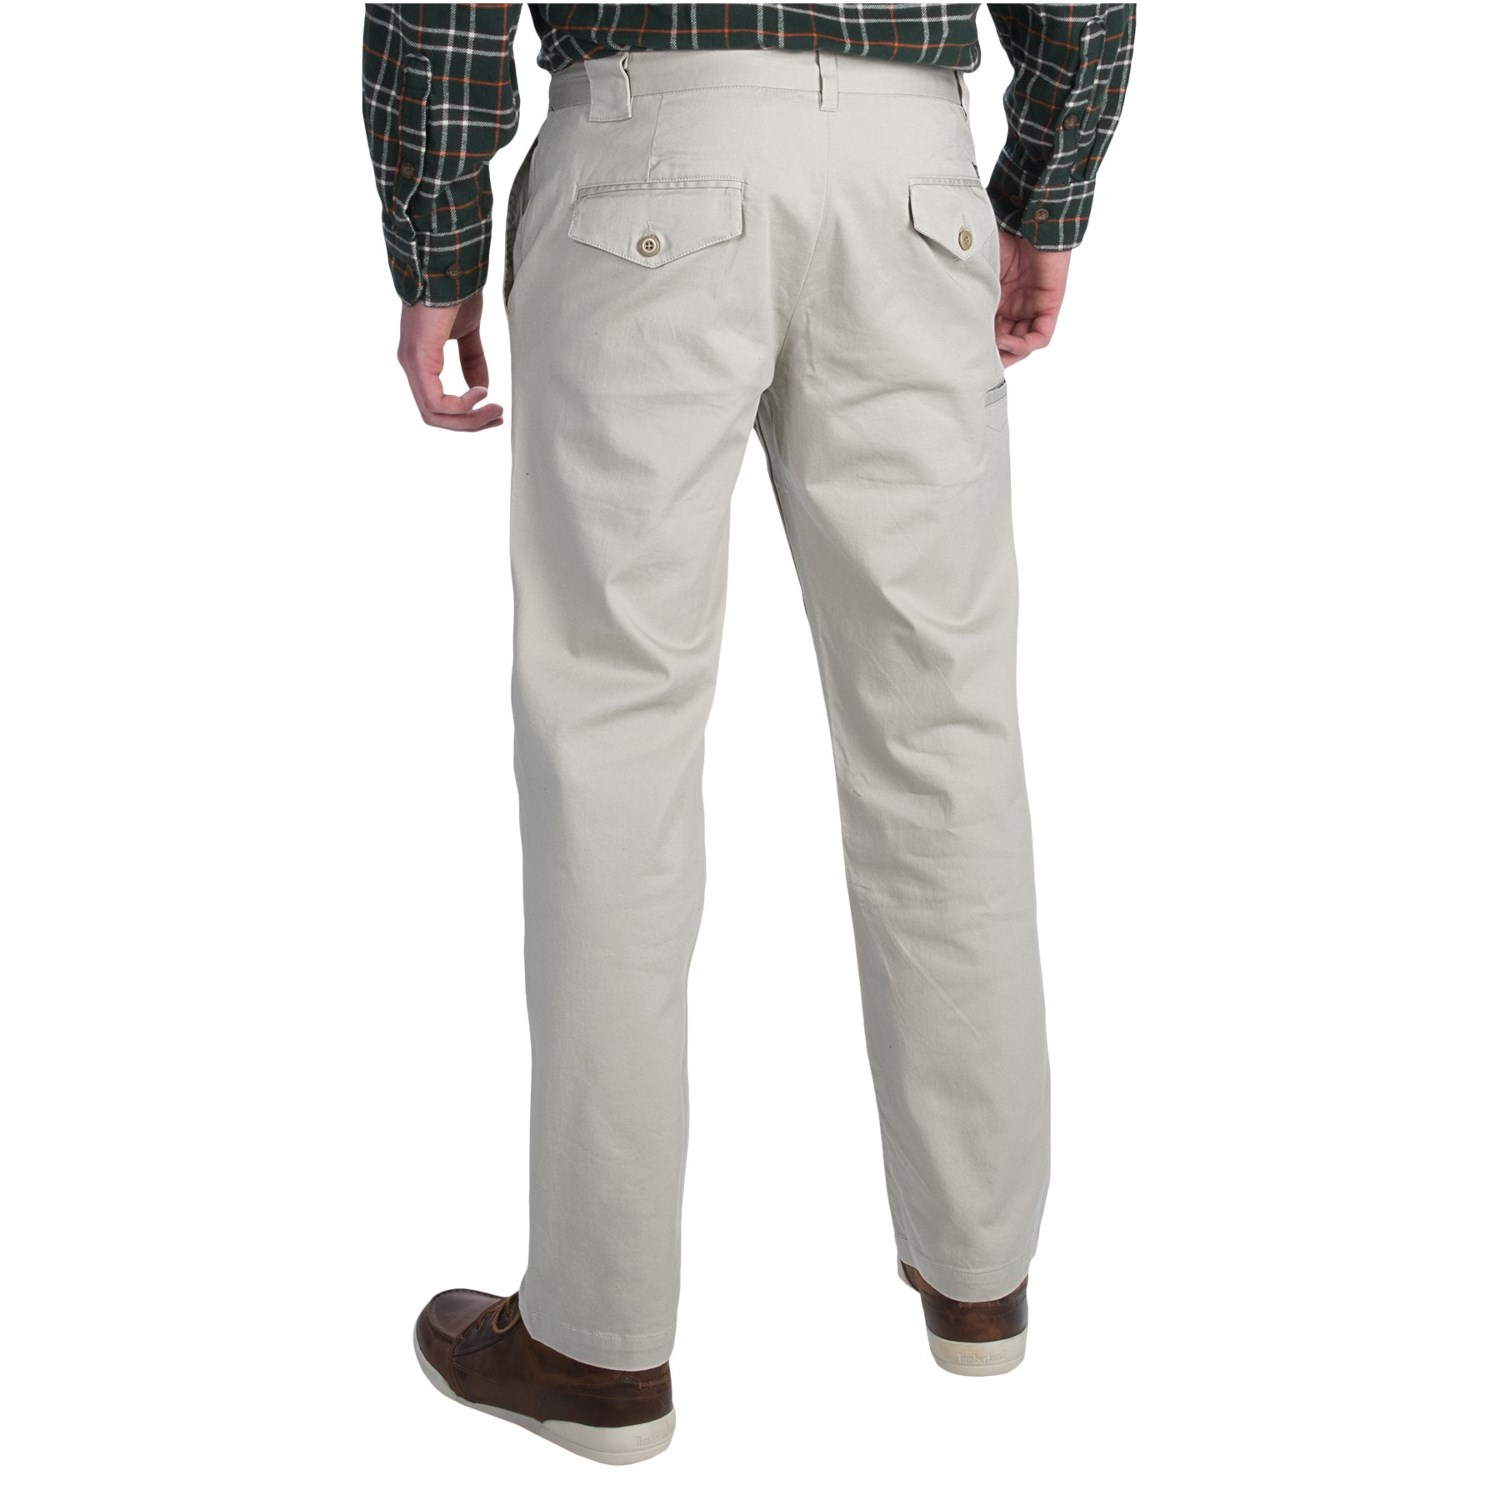 Guide – Colored Chino Pants